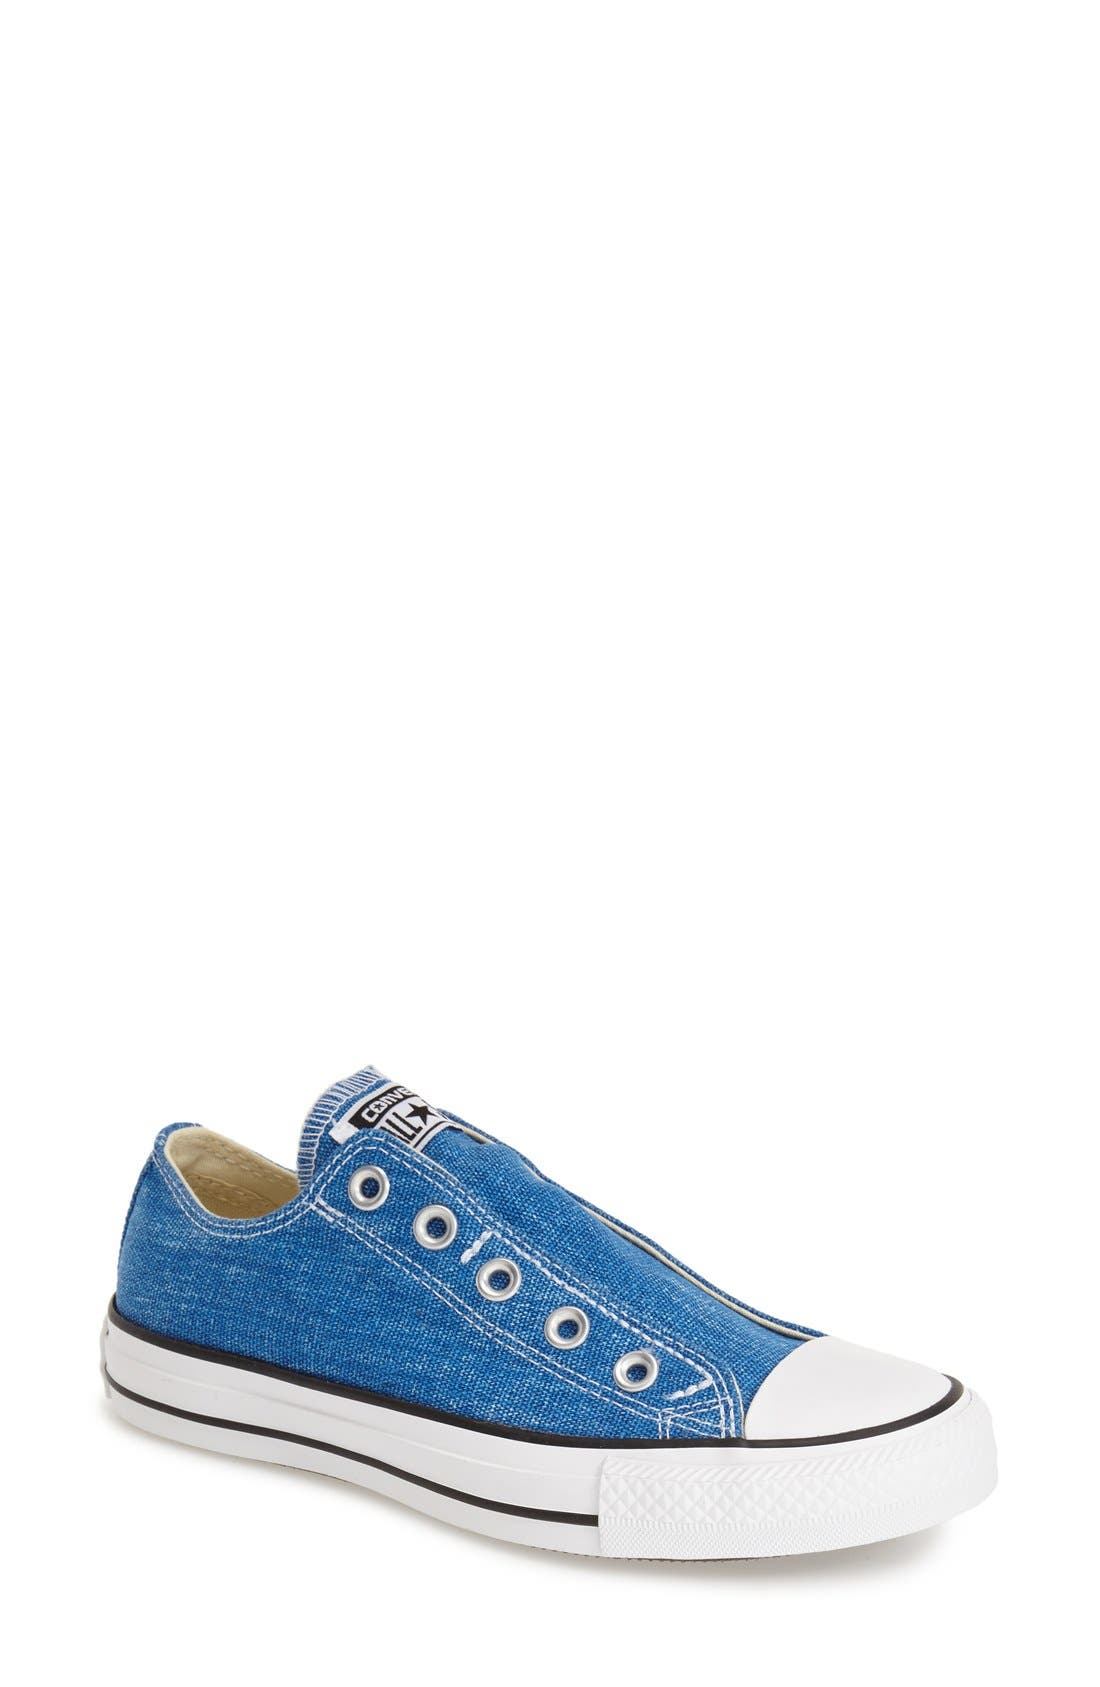 Main Image - Converse Chuck Taylor® All Star® 'Washed' Slip-On (Women)